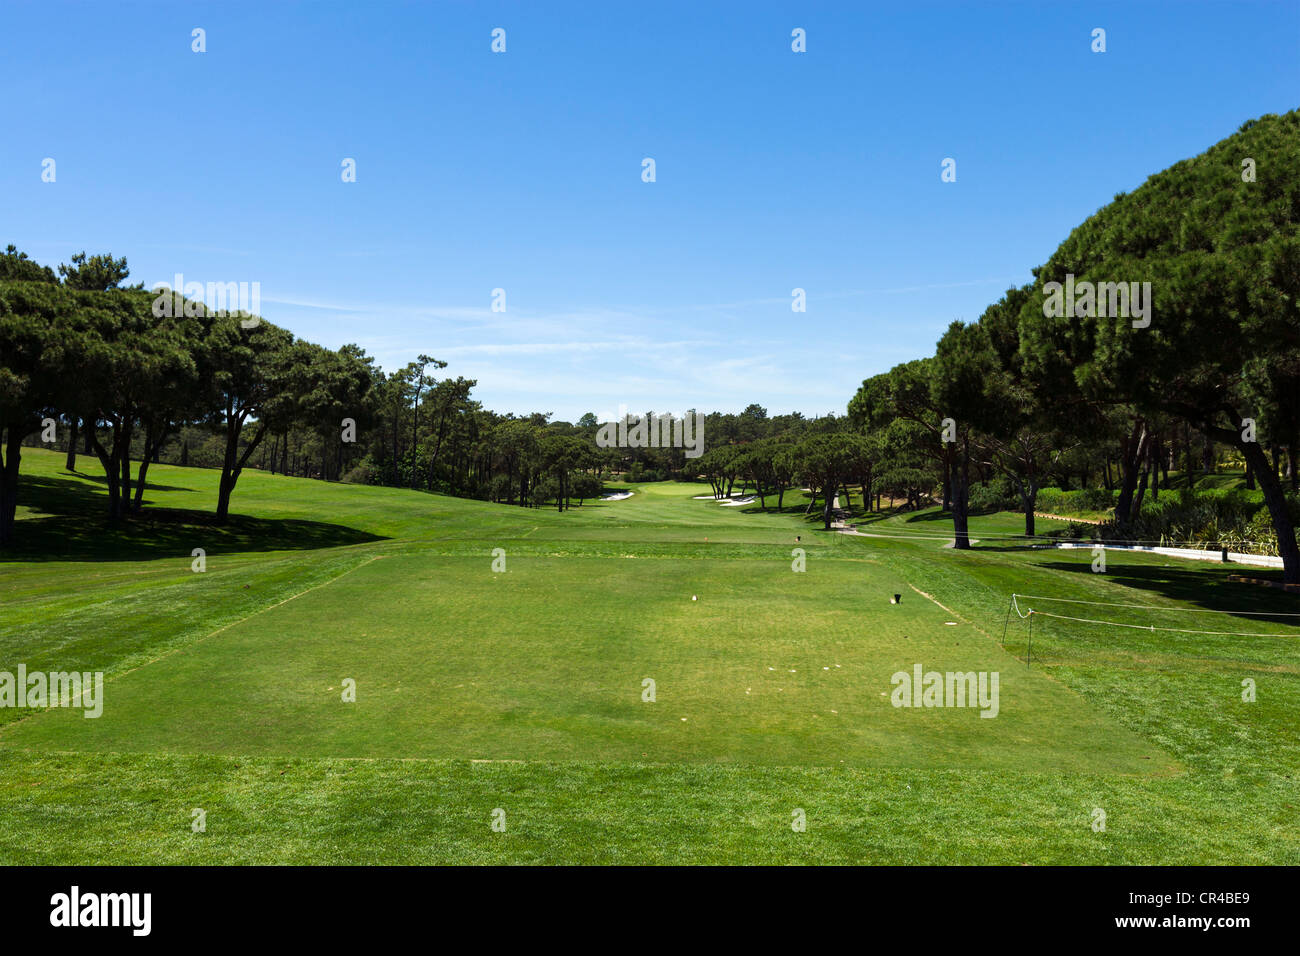 Tee and Fairway on the South Course near Vilar do Golf, Quinta do Lago, Algarve, Portugal - Stock Image